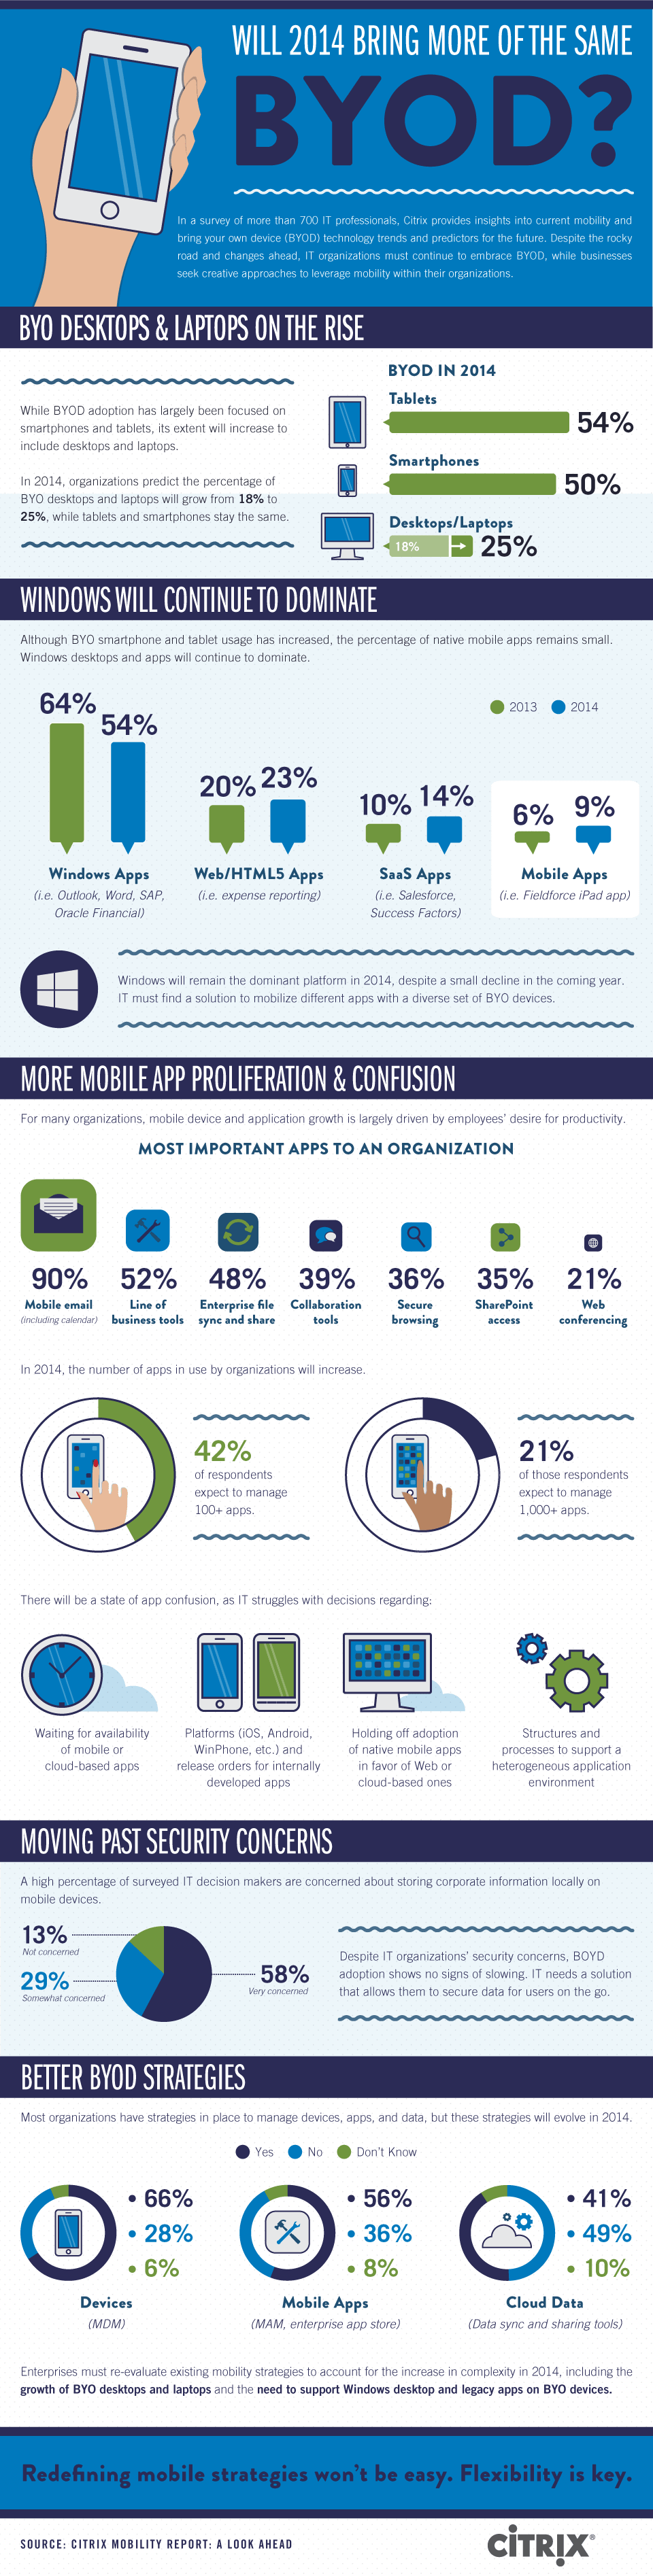 Will 2014 bring more of the same BYOD?